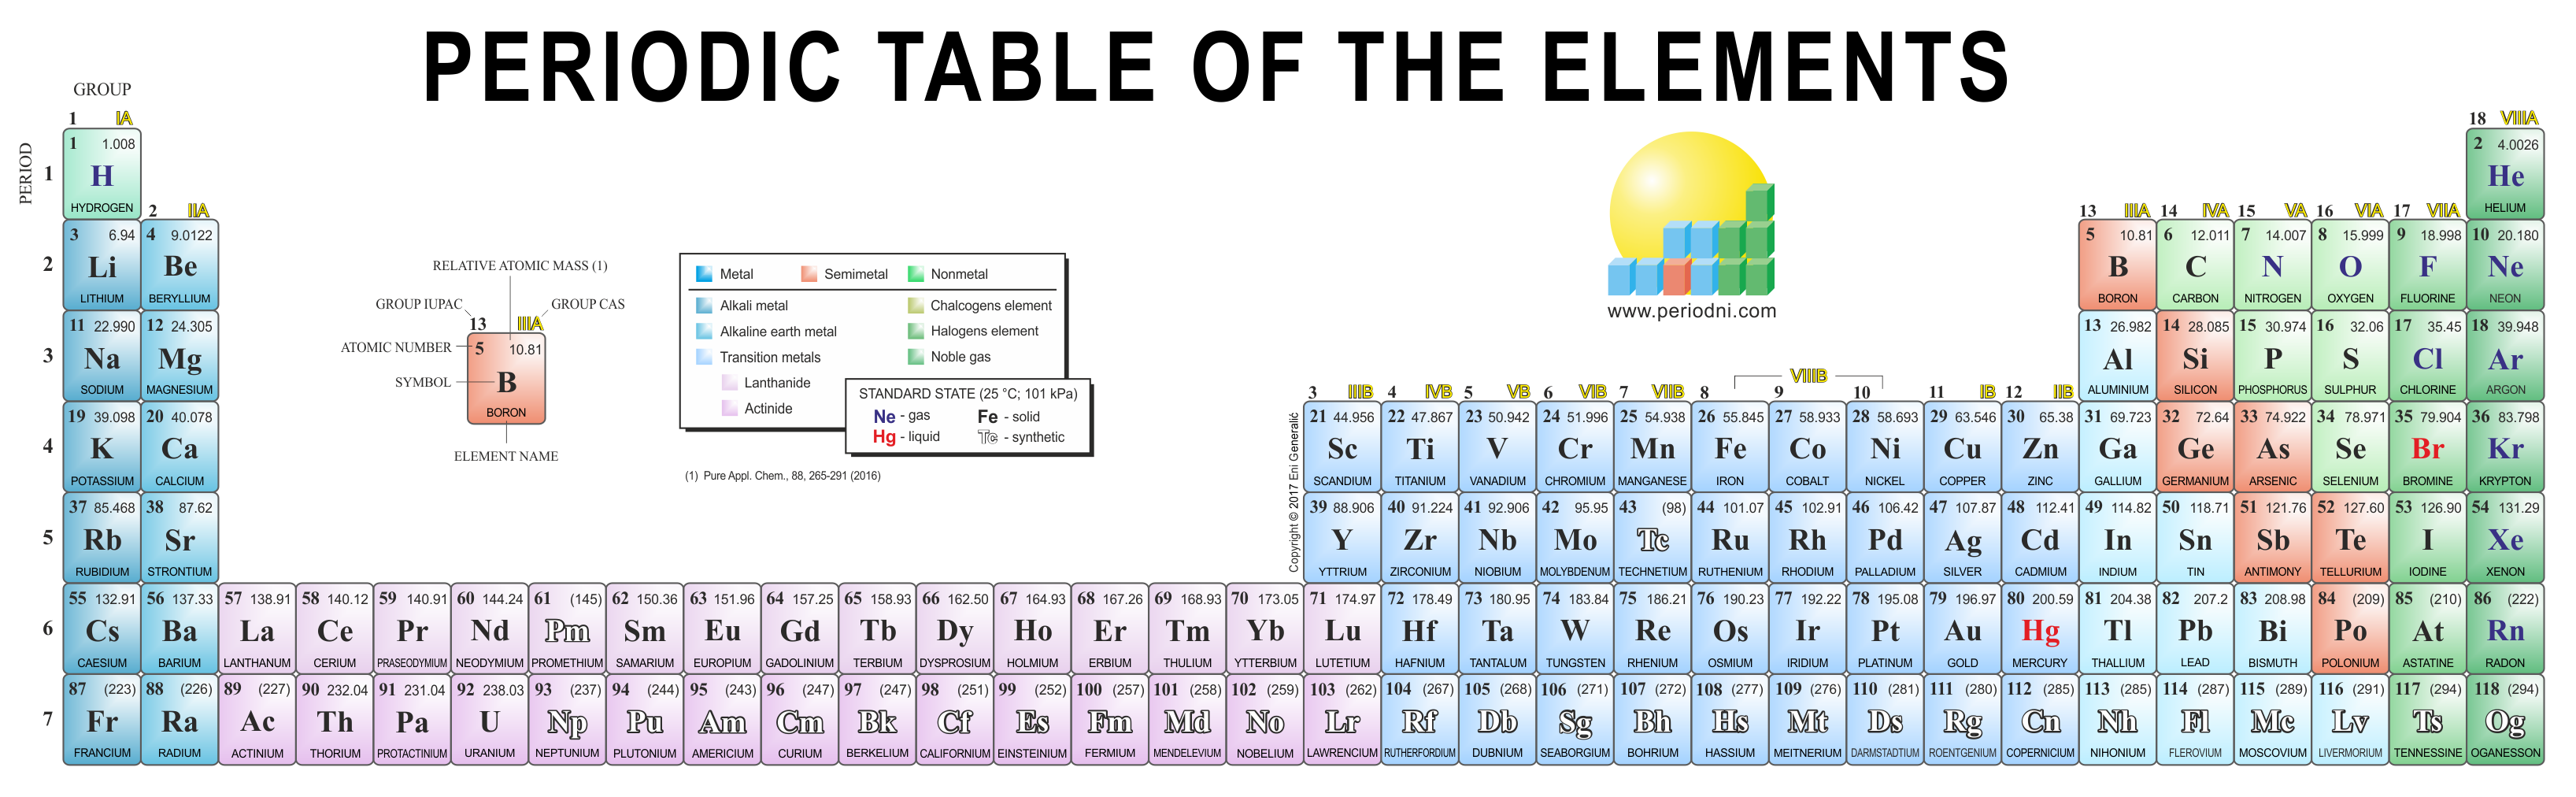 Chemistry images gallery 32 column periodic table urtaz